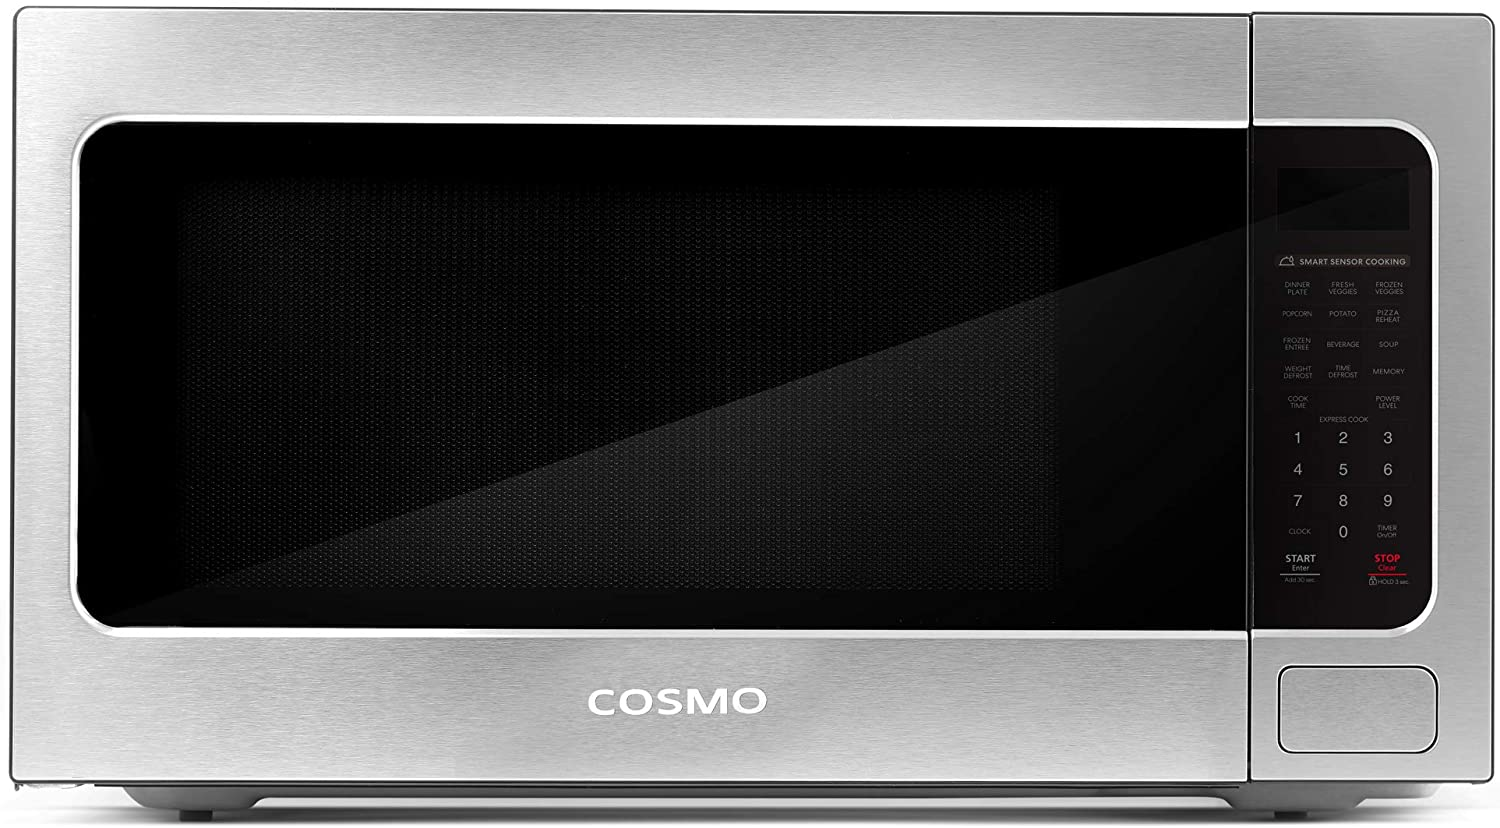 Cosmo COS-BIM22SSB Countertop/Built-in Microwave Oven with Smart Sensor, Touch Presets, 1200W & 2.2 cu. ft. Capacity, 24 inch, Stainless Steel